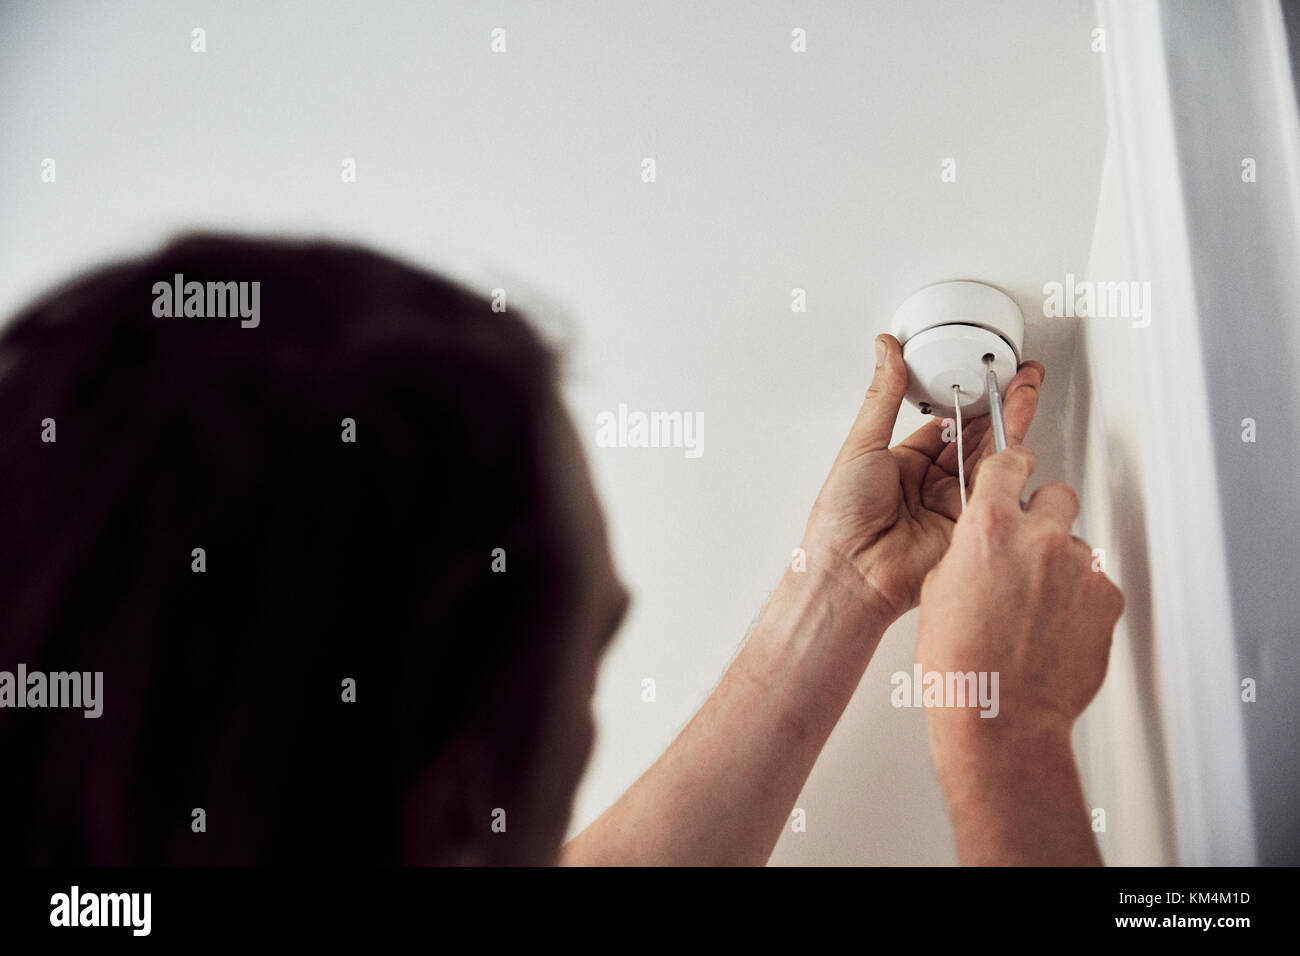 An electrician screwing the cap on a light fitting on the ceiling. - Stock Image